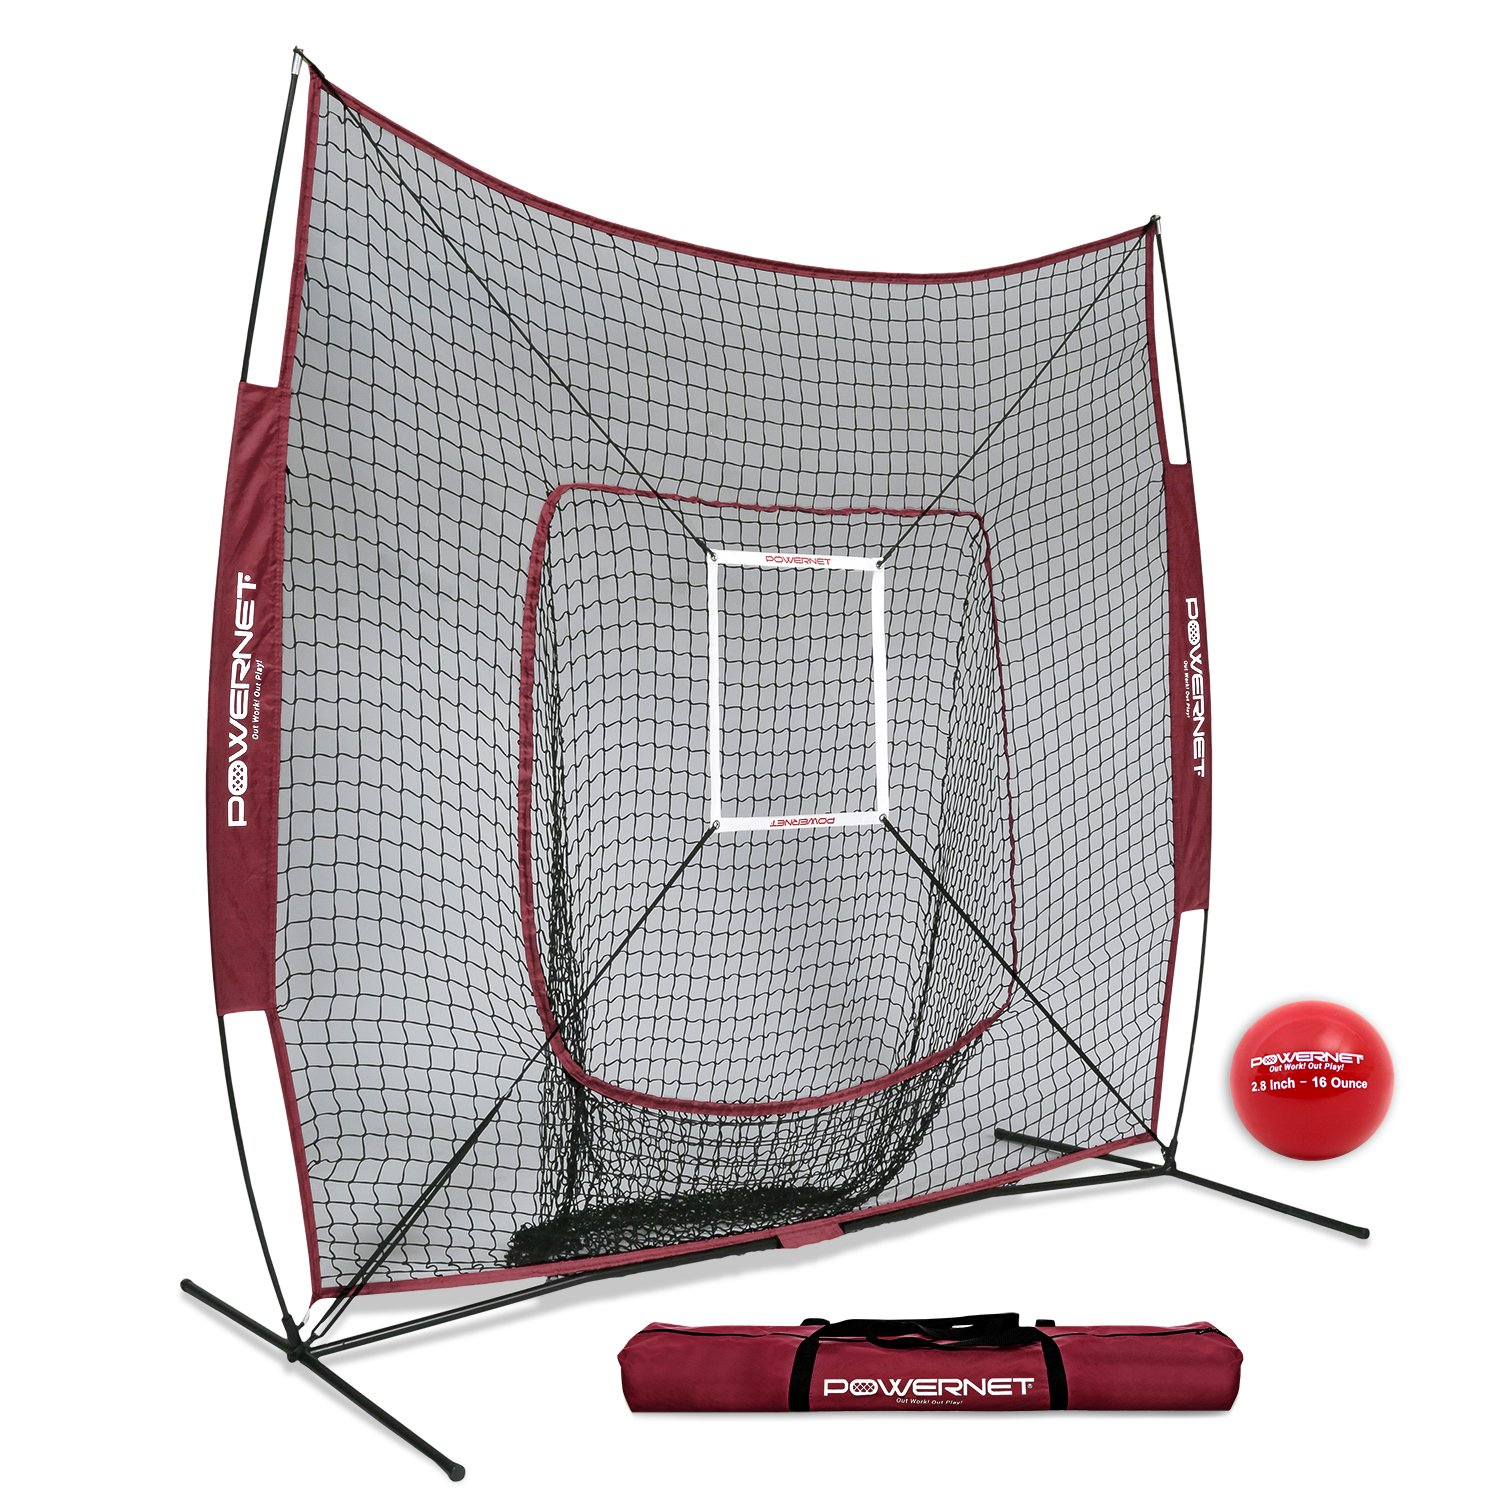 PowerNet DLX 7x7 Baseball Softball Hitting Net + Weighted Heavy Ball + Strike Zone Bundle (Maroon) | Training Set | Practice Equipment Batting Soft Toss Pitching | Team Color | Portable Backstop by PowerNet